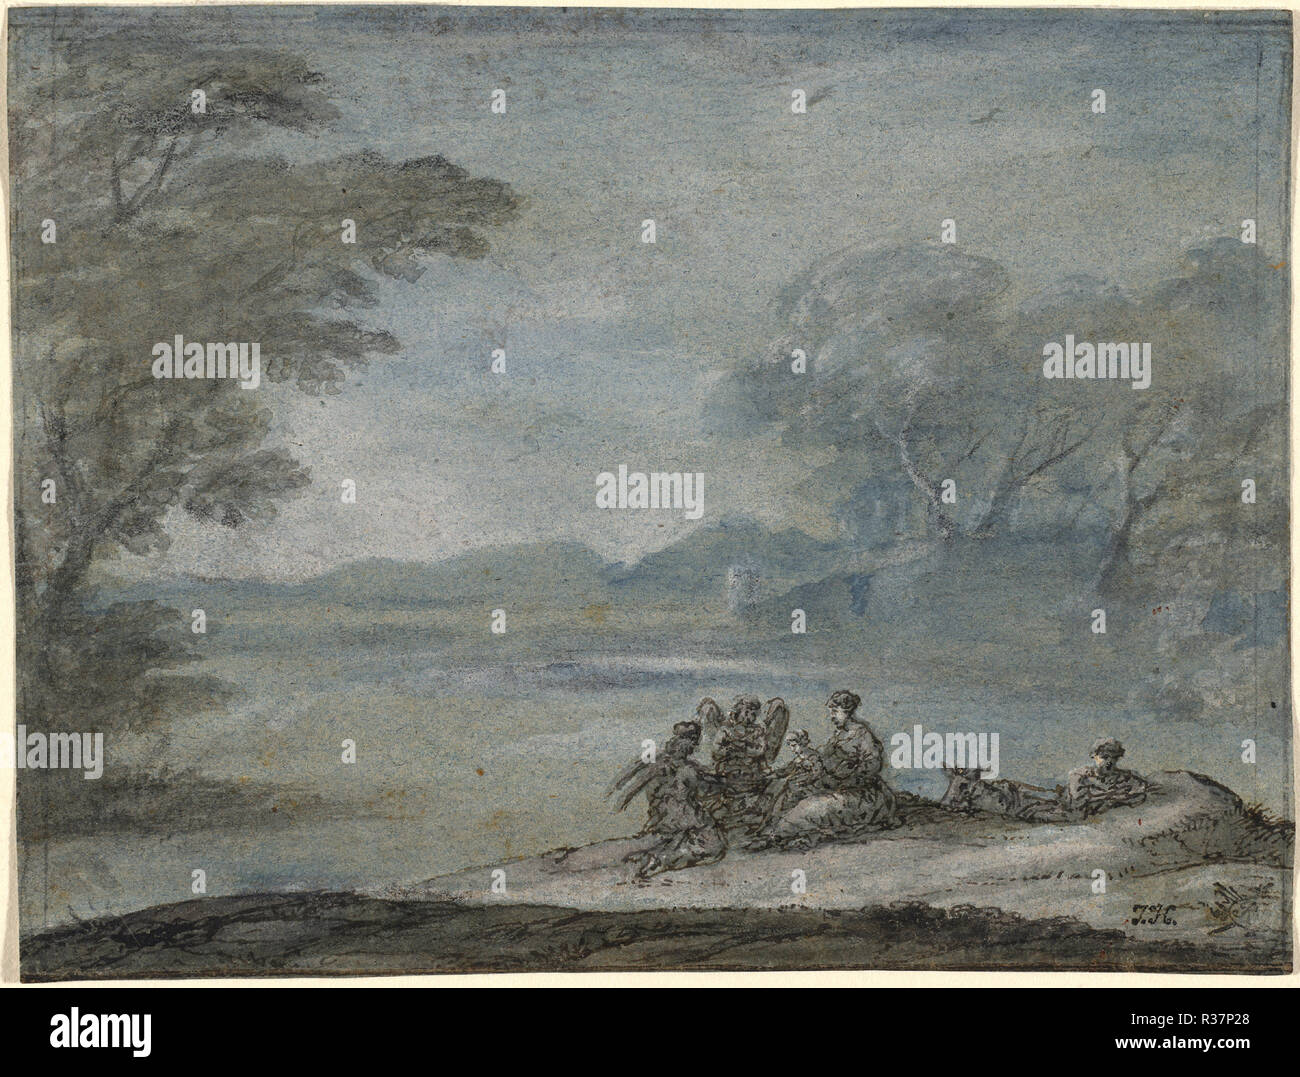 The Rest on the Flight into Egypt. Dated: 1682. Dimensions: overall (approximate): 12.6 x 16.6 cm (4 15/16 x 6 9/16 in.). Medium: pen and brown ink with gray and blue wash and graphite, heightened with white gouache on blue laid paper. Museum: National Gallery of Art, Washington DC. Author: Claude Lorrain. - Stock Image